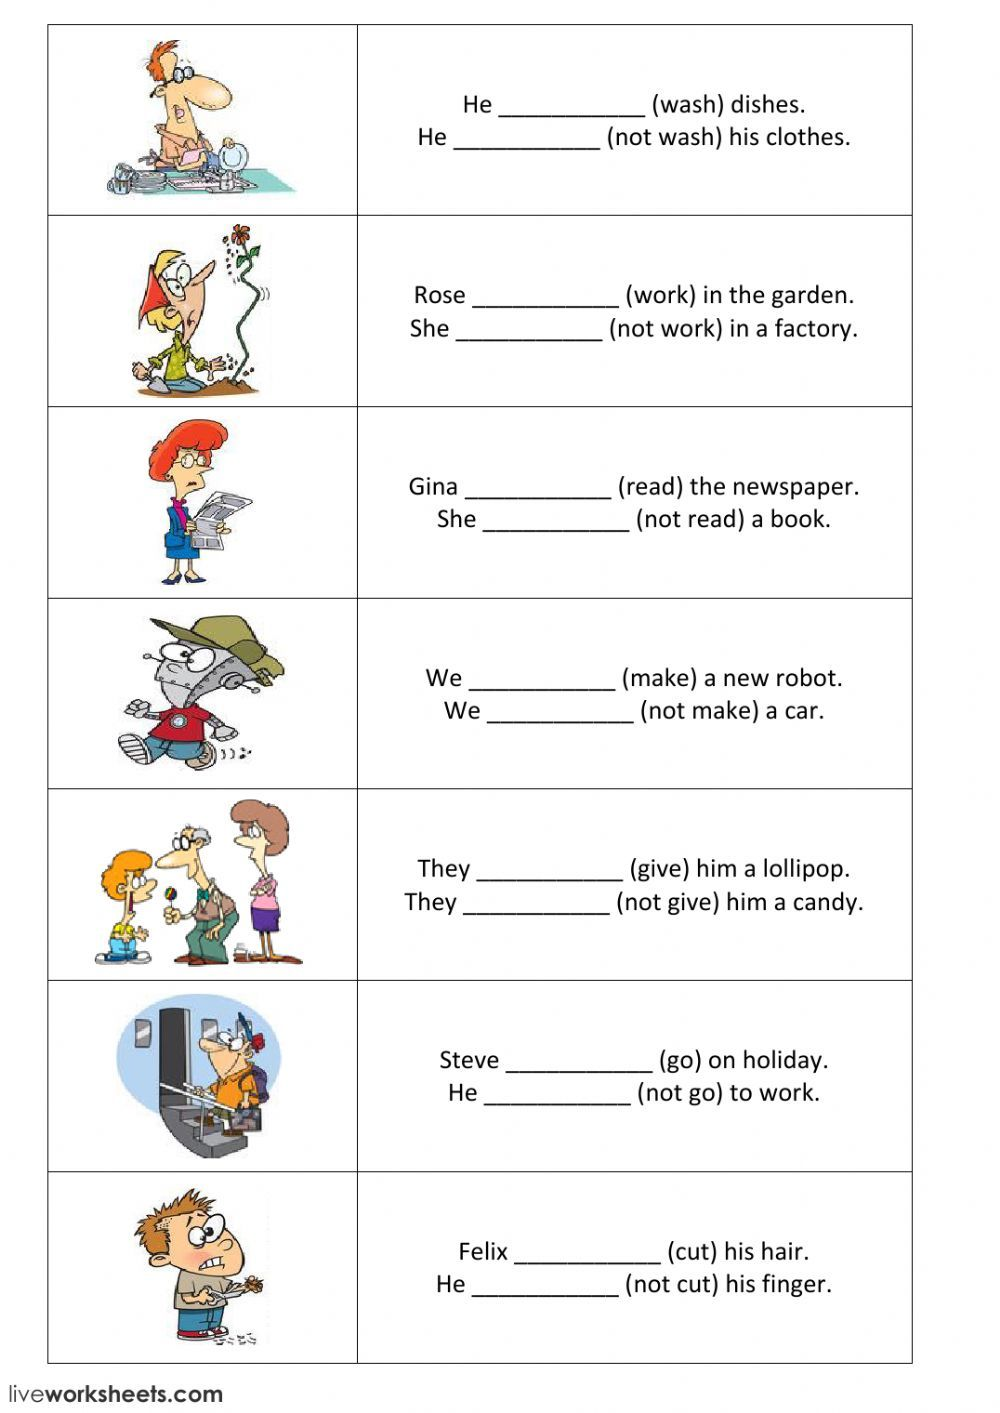 Present Simple interactive and downloadable worksheet. You